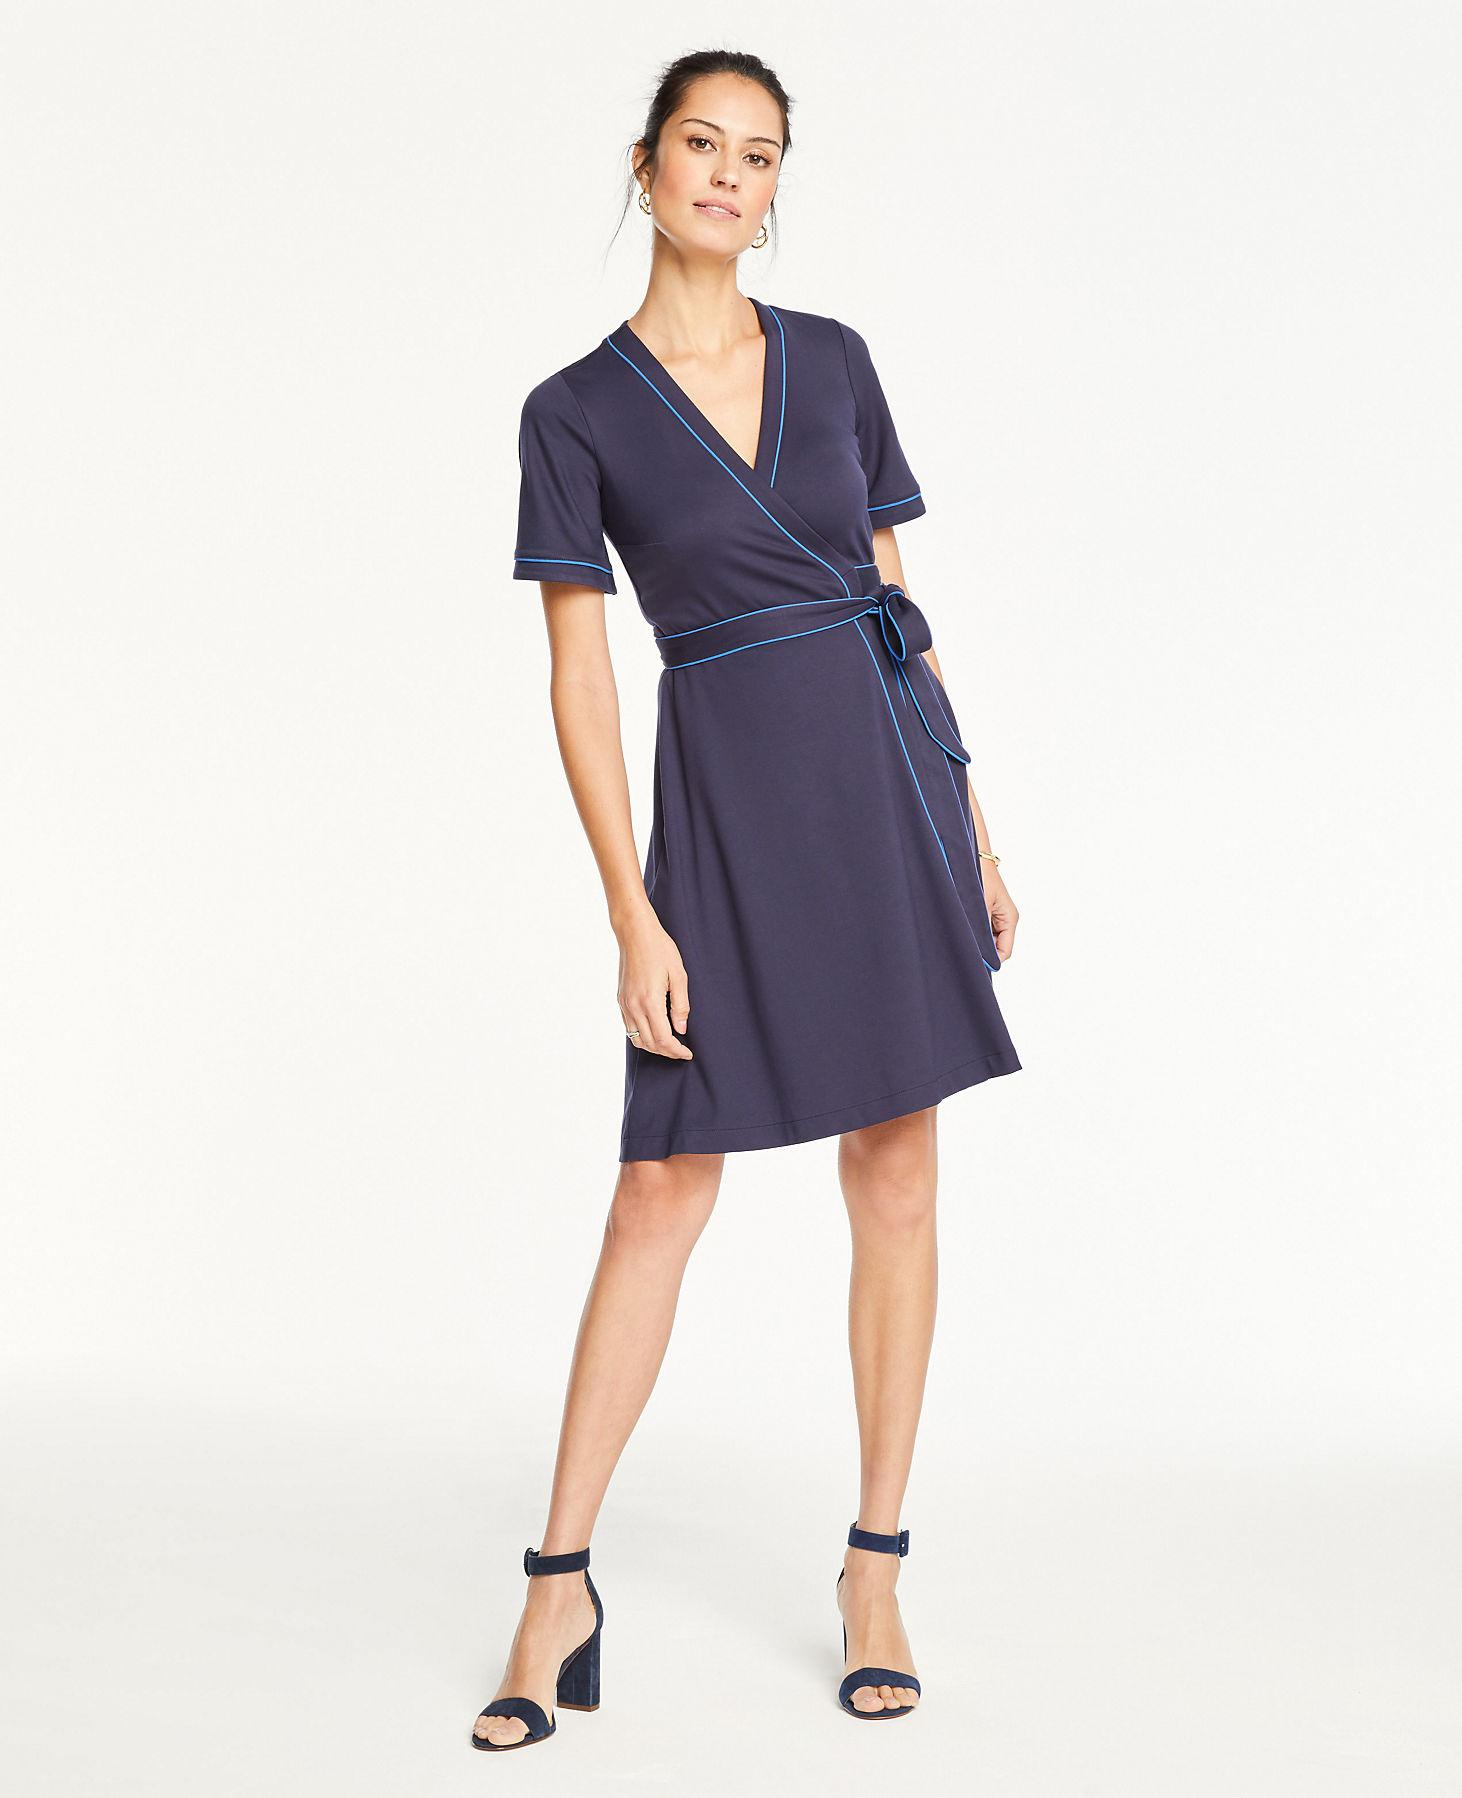 7cb7b3af59 ... Piped Flutter Sleeve Wrap Dress - Lyst. View fullscreen